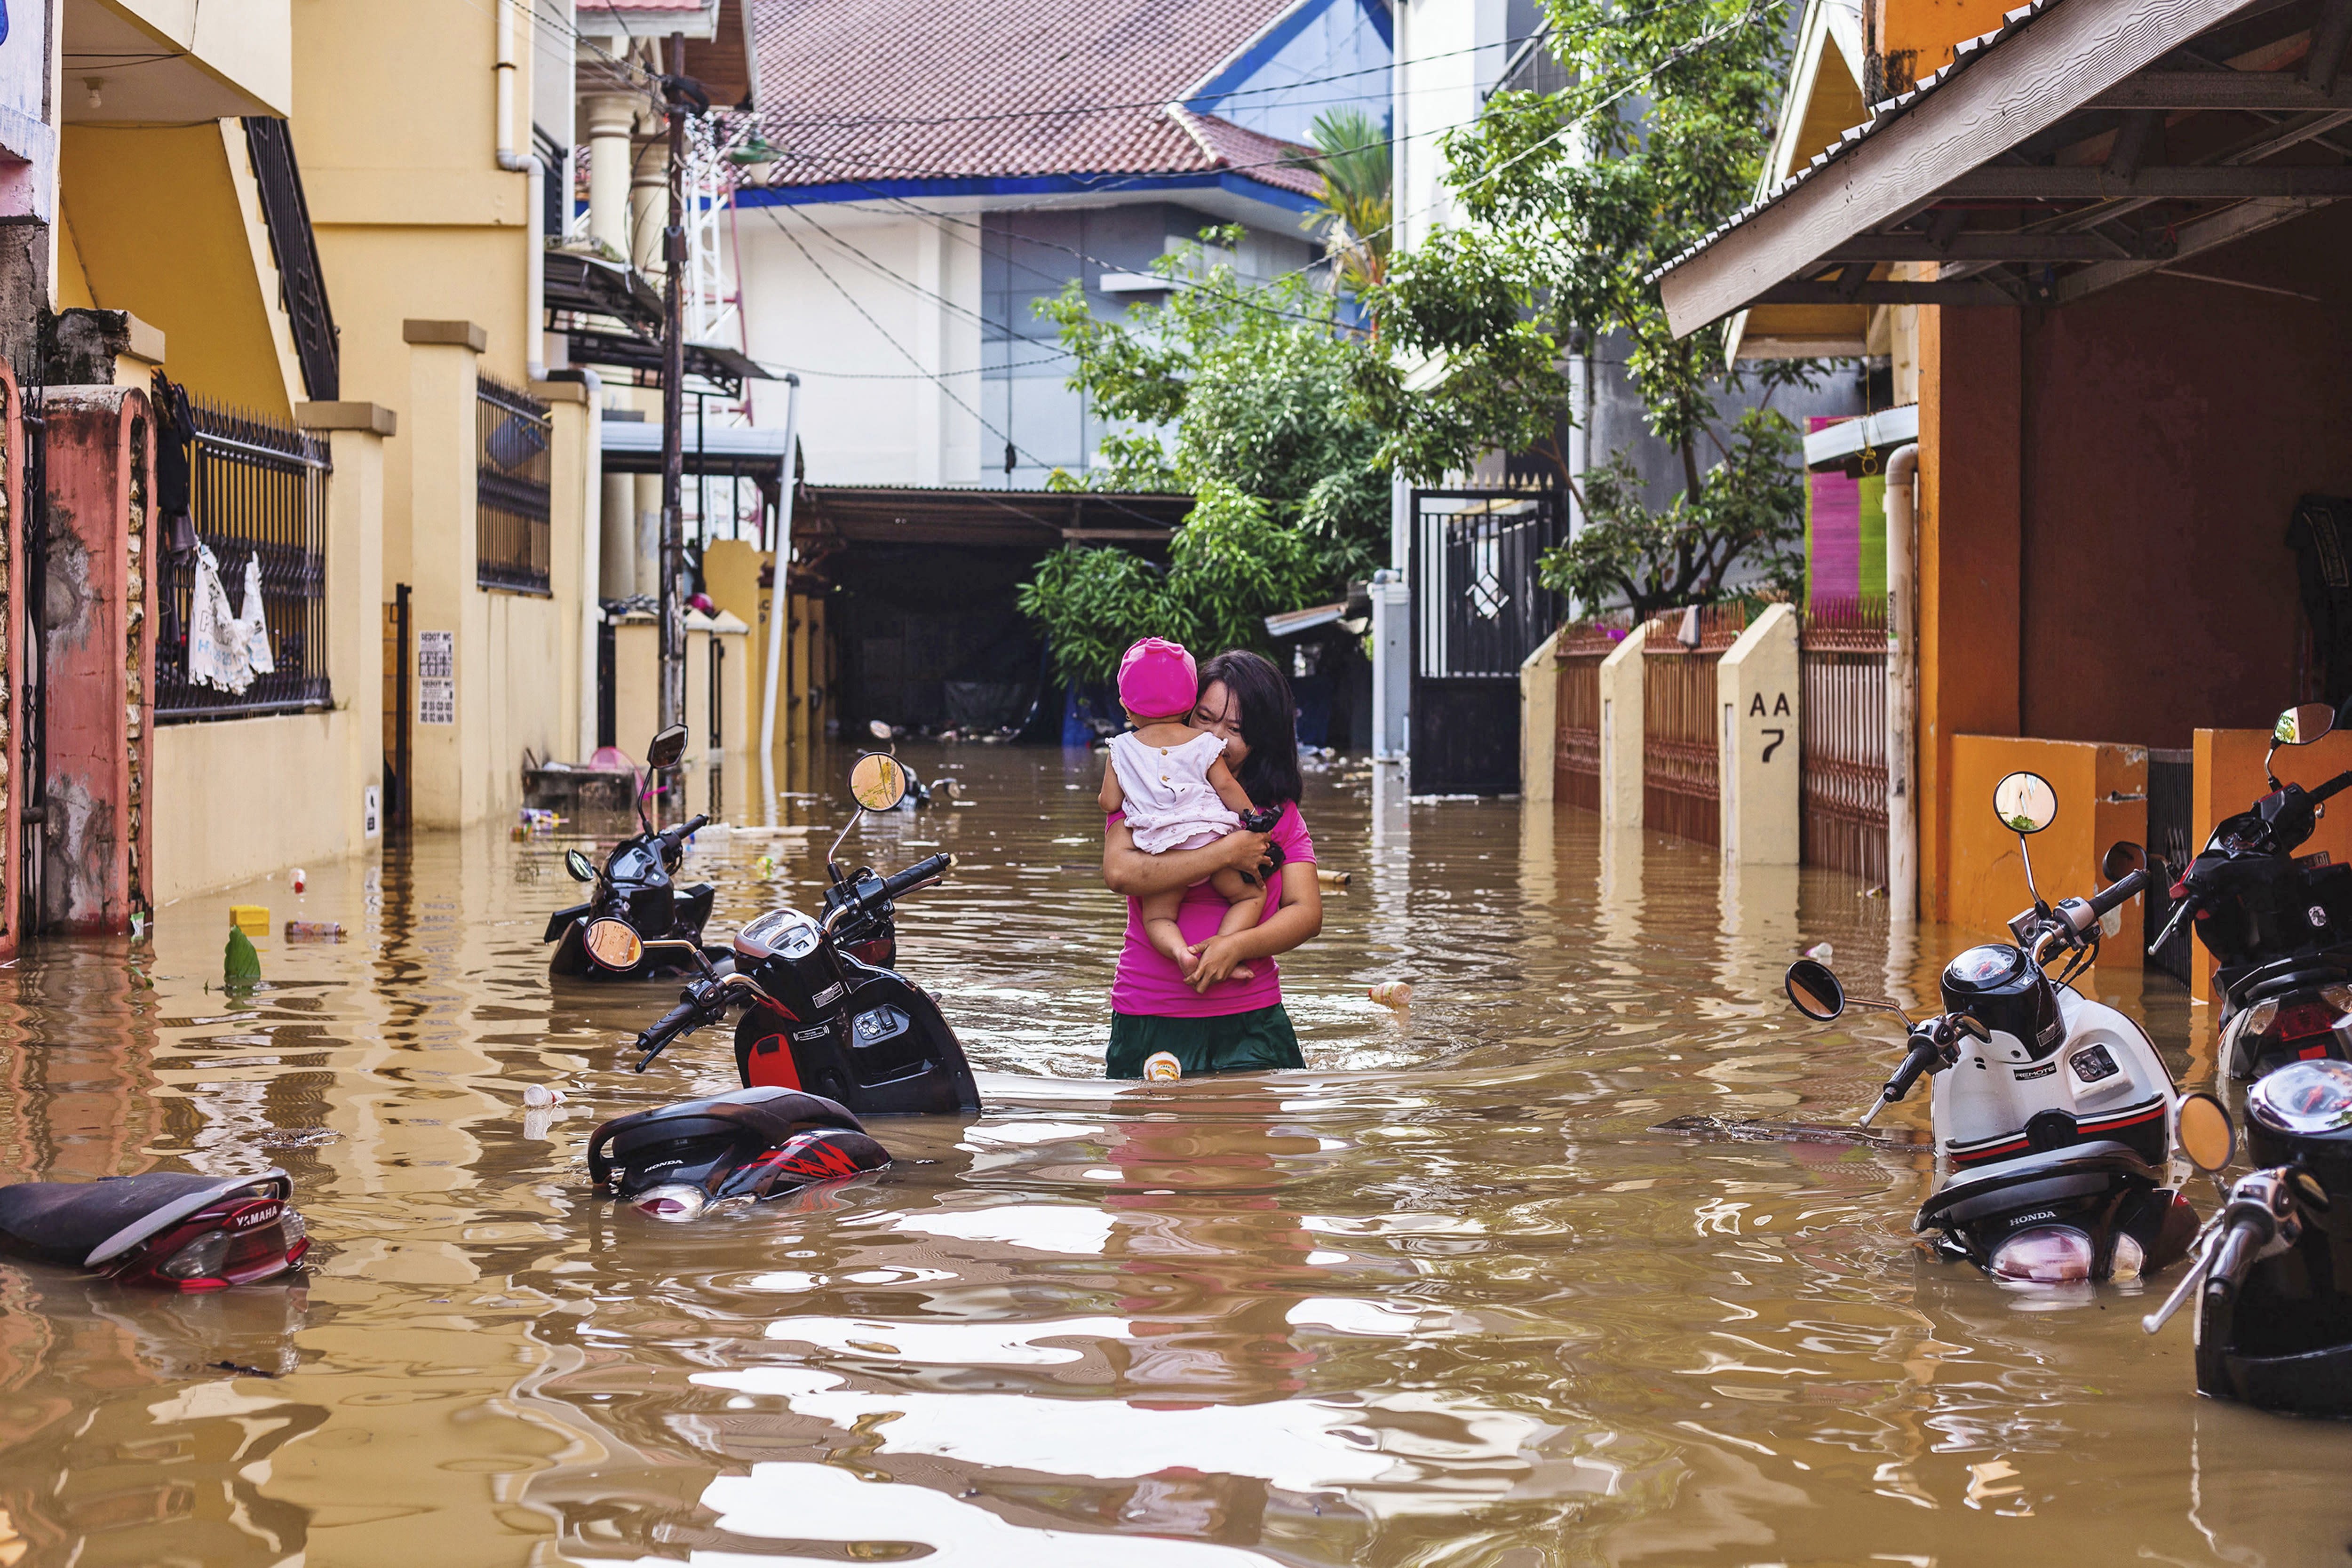 A woman carries her daughter as she wades through a flooded neighborhood in Makassar, South Sulawesi, Indonesia, Wednesday, Jan. 23, 2019. Torrential rains that overwhelmed a dam and caused landslides killed at least six people and displaced more than 2,000 in central Indonesia, officials said Wednesday. (AP Photo/Yusuf Wahil)